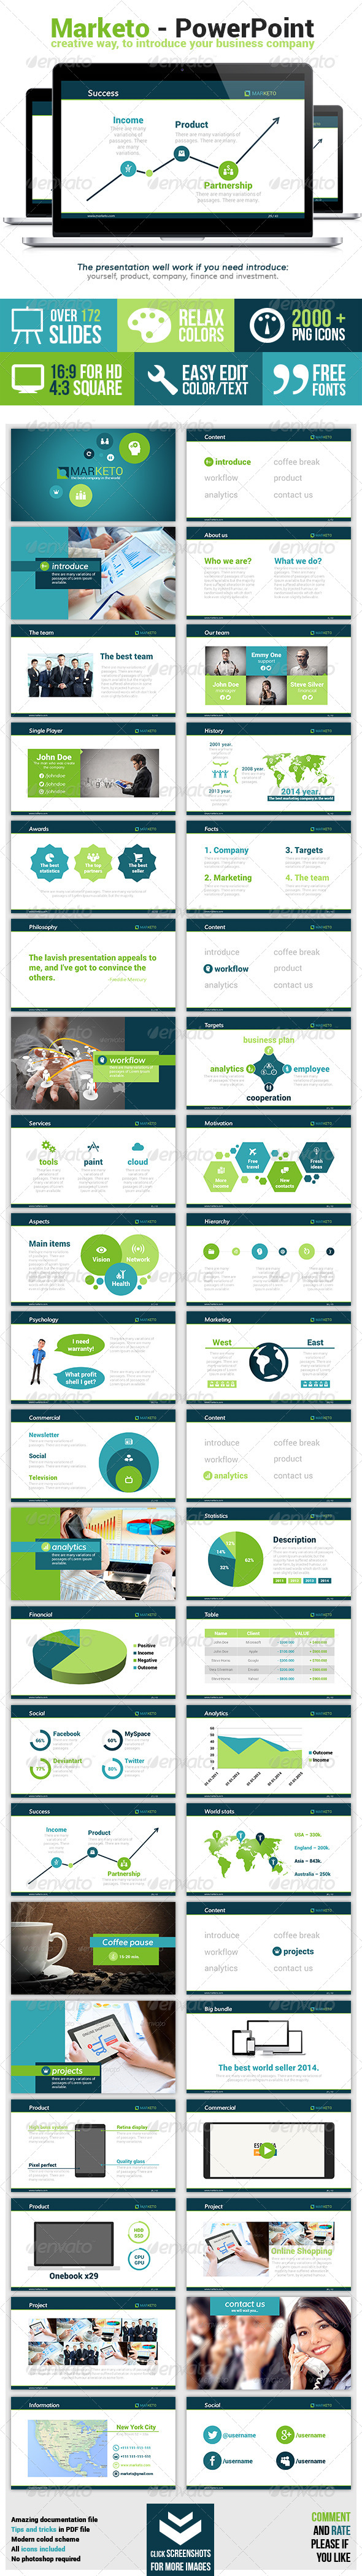 GraphicRiver Marketo Powerpoint Presentatio 7263622